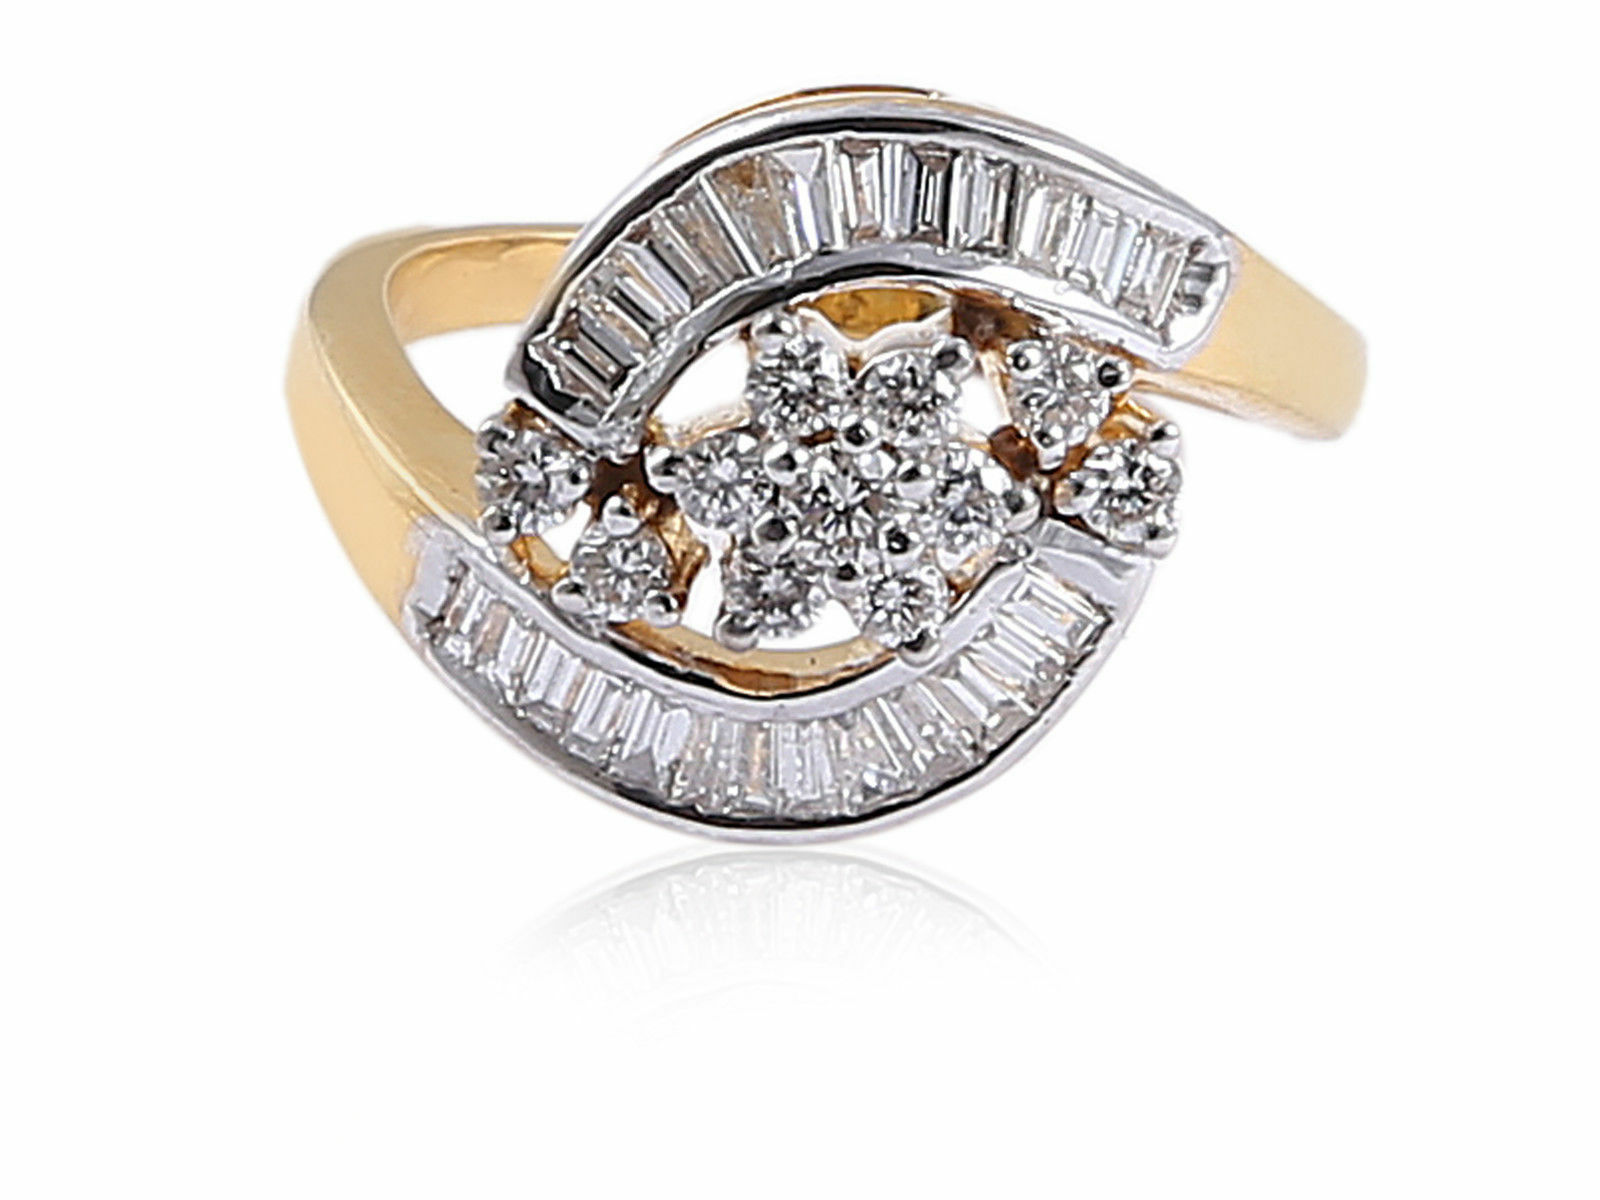 Pave 0.73 Cts Round Baguette Cut Diamonds Engagement Ring In Solid 14Karat gold